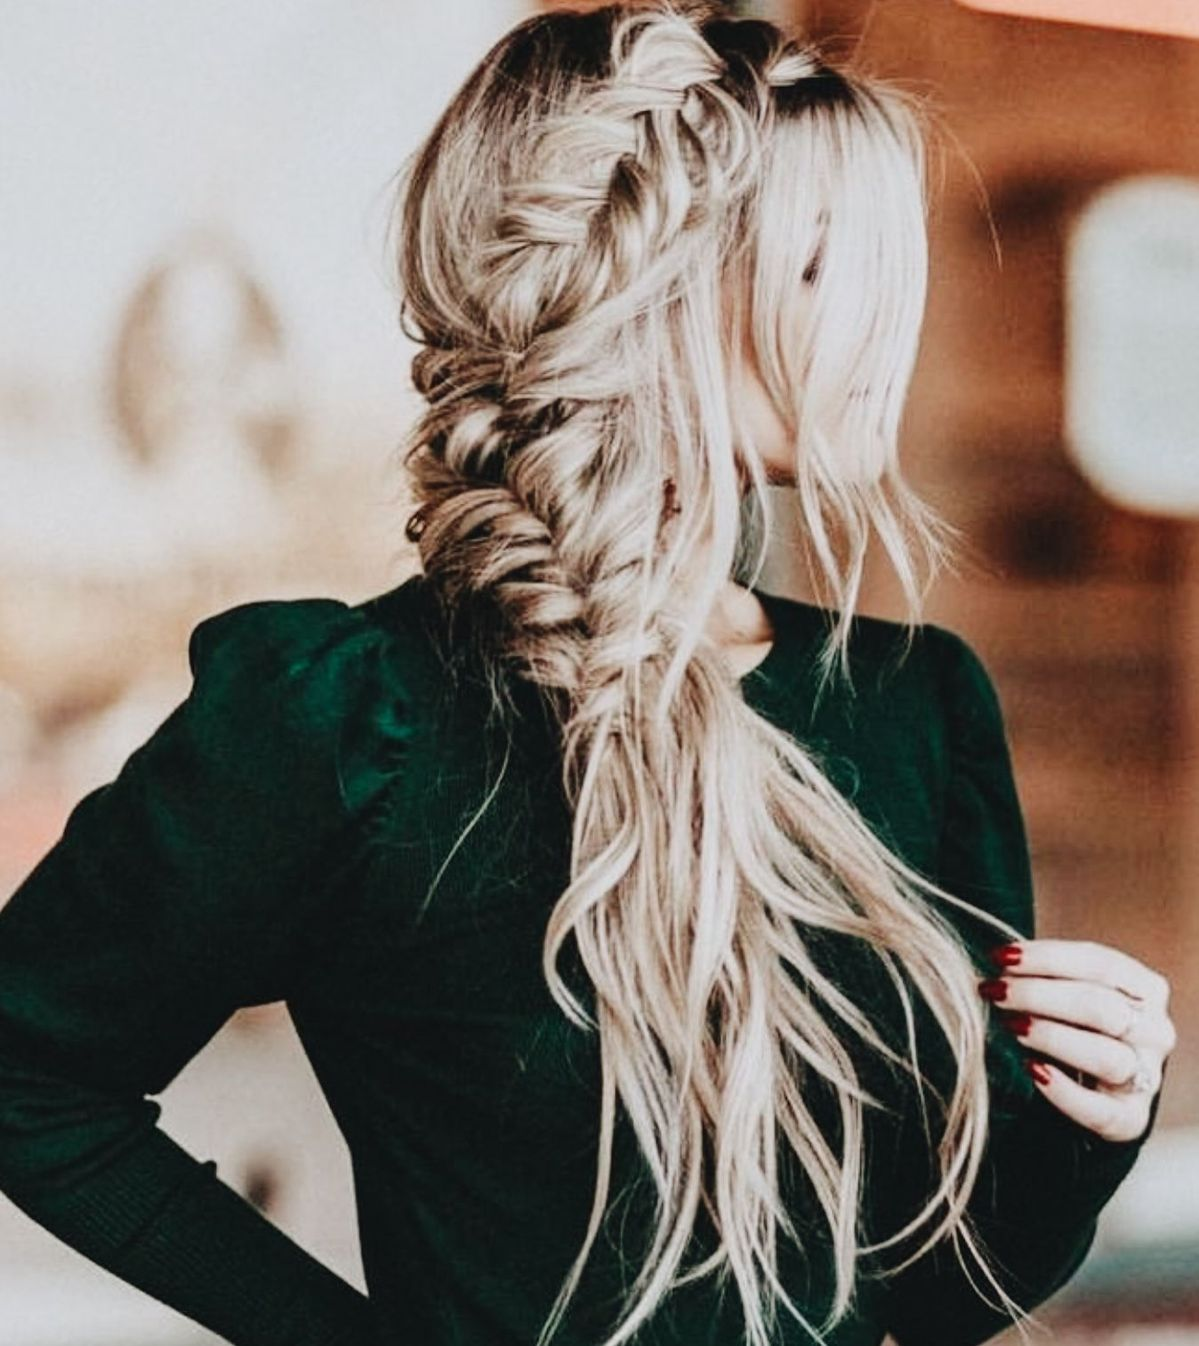 """Hairstyles hair ideas hair tutorial hair colour hair updos messy hair long short and medium length hair. Balayage and ombre hair. Brunette blonde brown natural volume sleek layers auburn wavy straight curly hair. Easy and fancy hairstyles ponytail plaits fringe bun fishtail braids.<p><a href=""""http://www.homeinteriordesign.org/2018/02/short-guide-to-interior-decoration.html"""">Short guide to interior decoration</a></p>"""